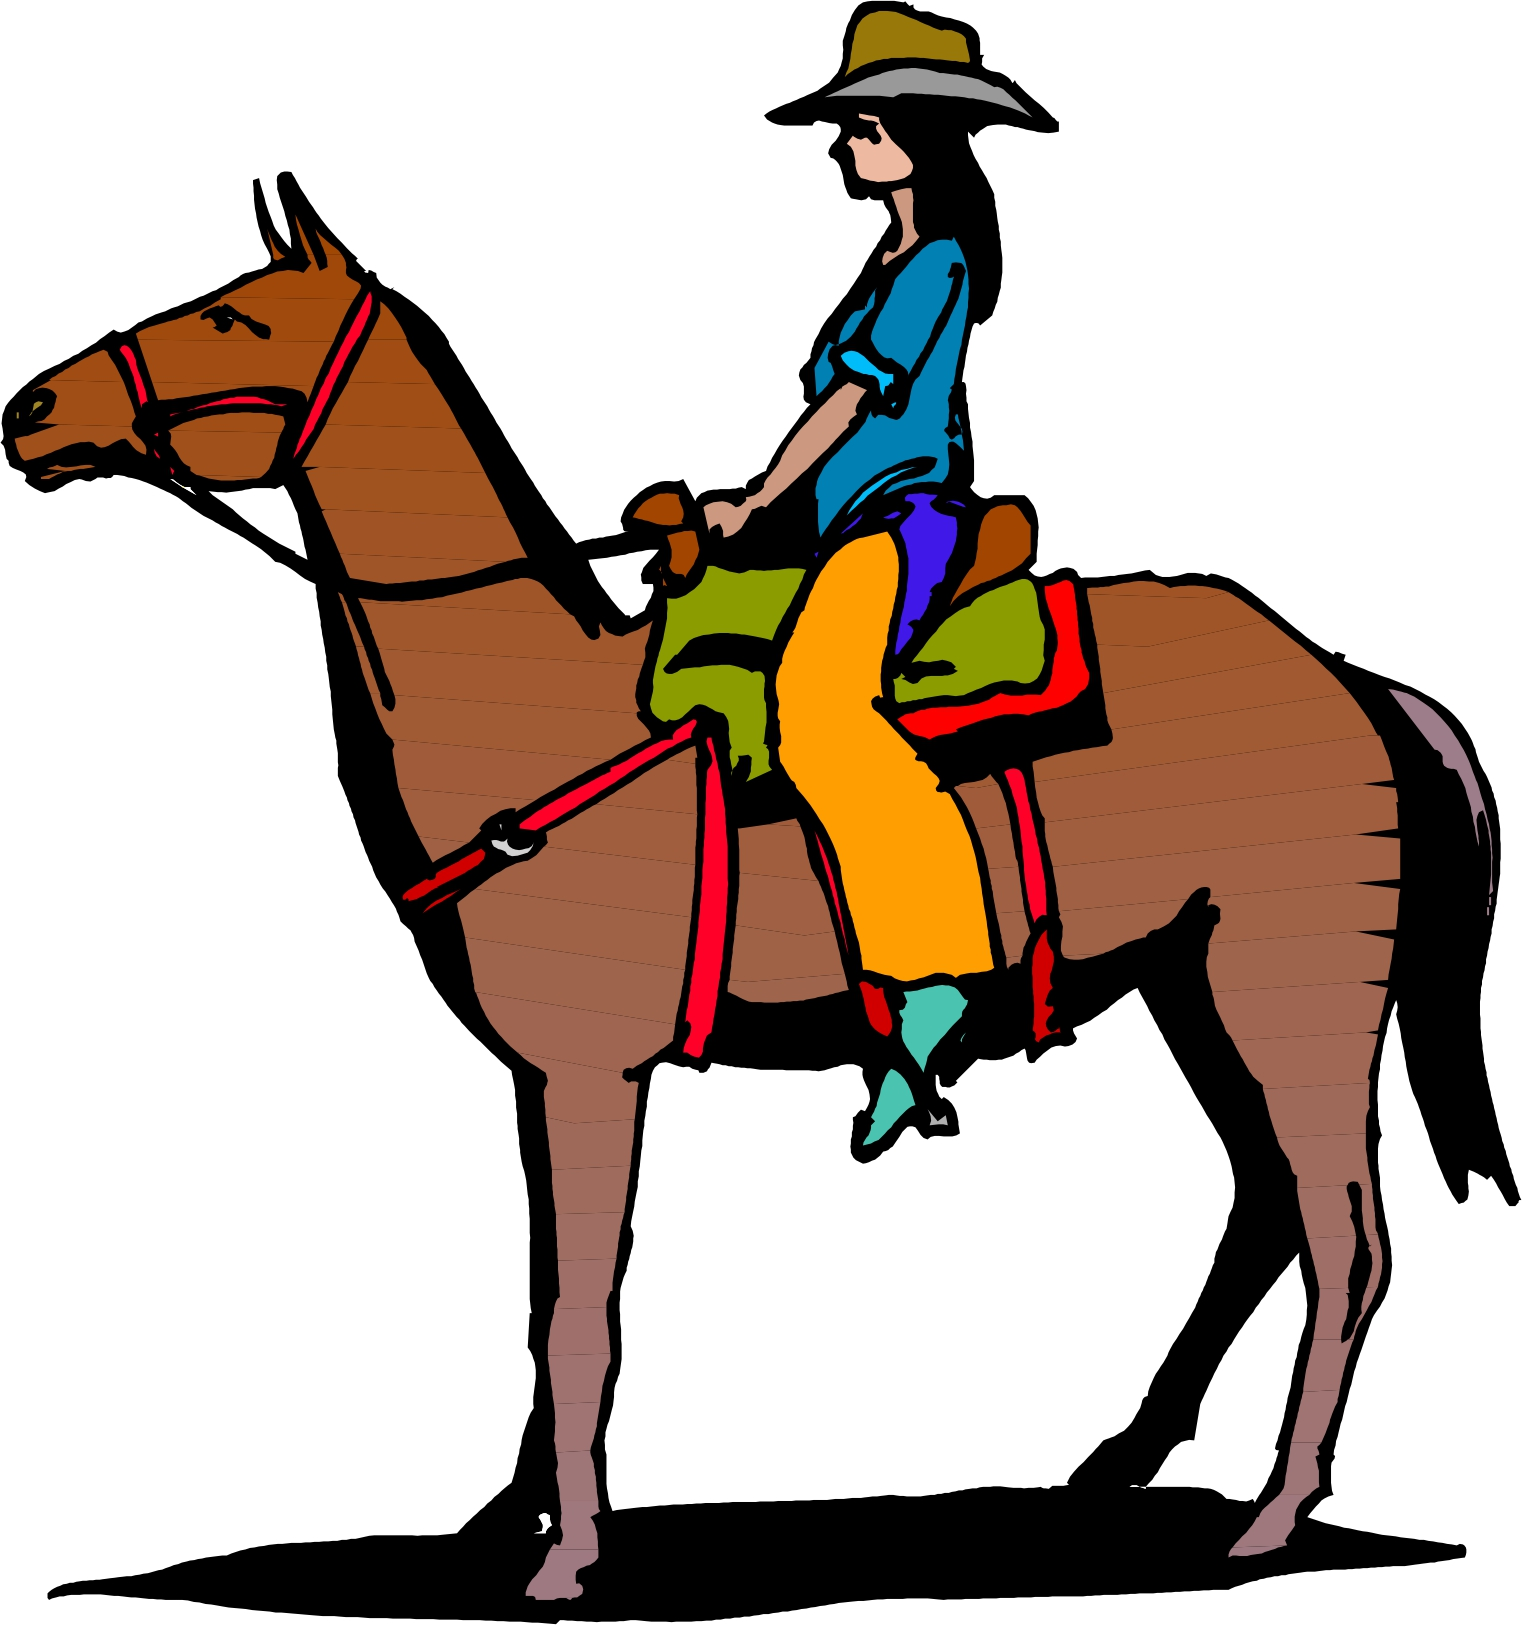 1522x1625 Collection Of Western Horse Riding Clipart High Quality